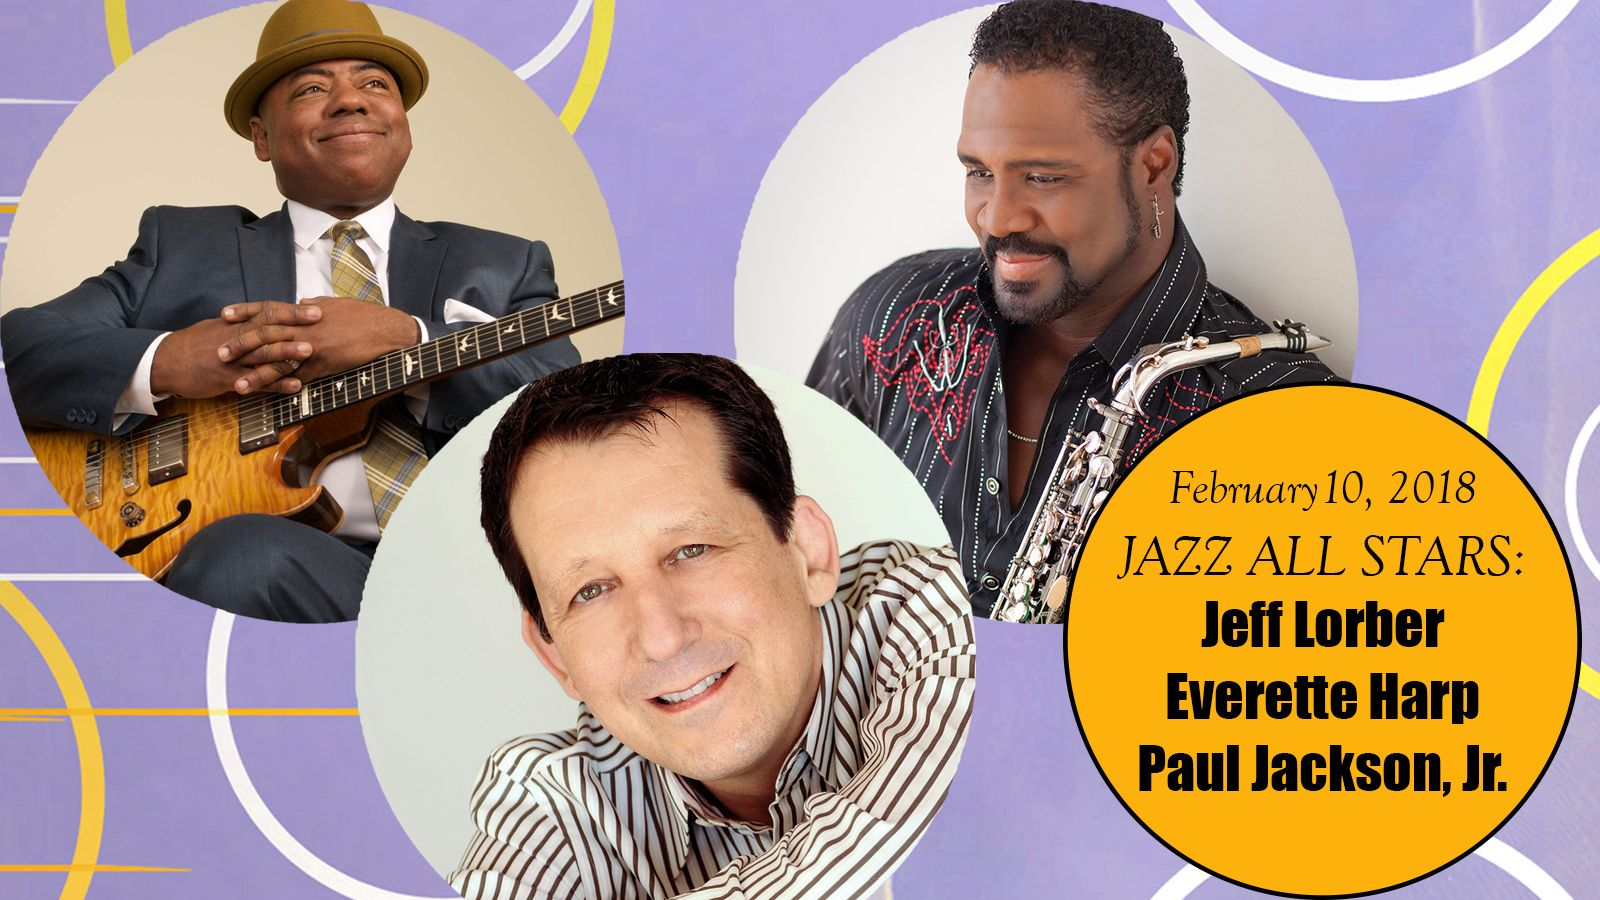 Palm Springs Jazz Series - Jeff Lorber, Everette Harp & Paul Jackson